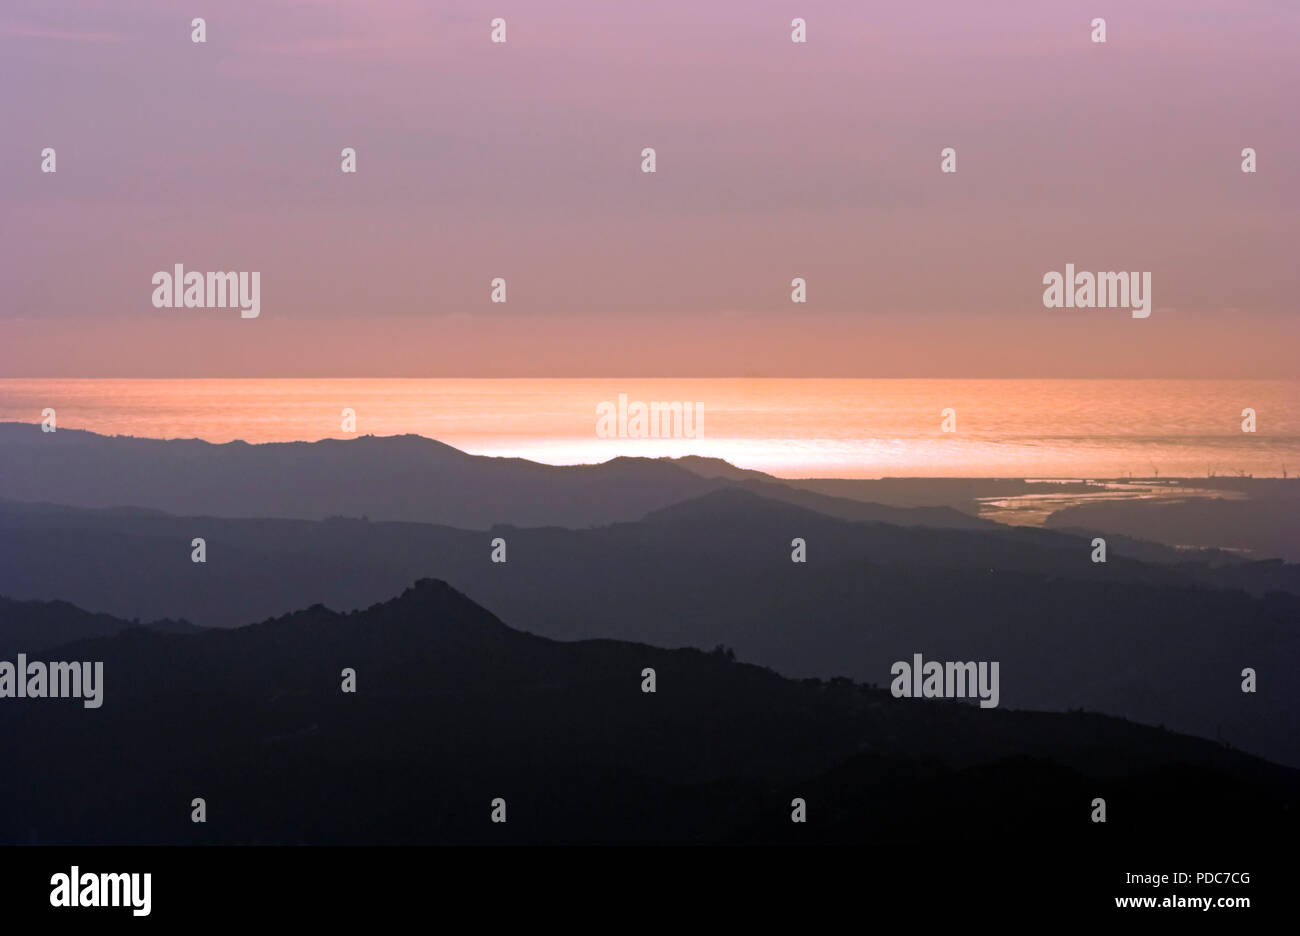 Interesting image seeing mountain layers and sea at sunset in the north of Portugal - Stock Image